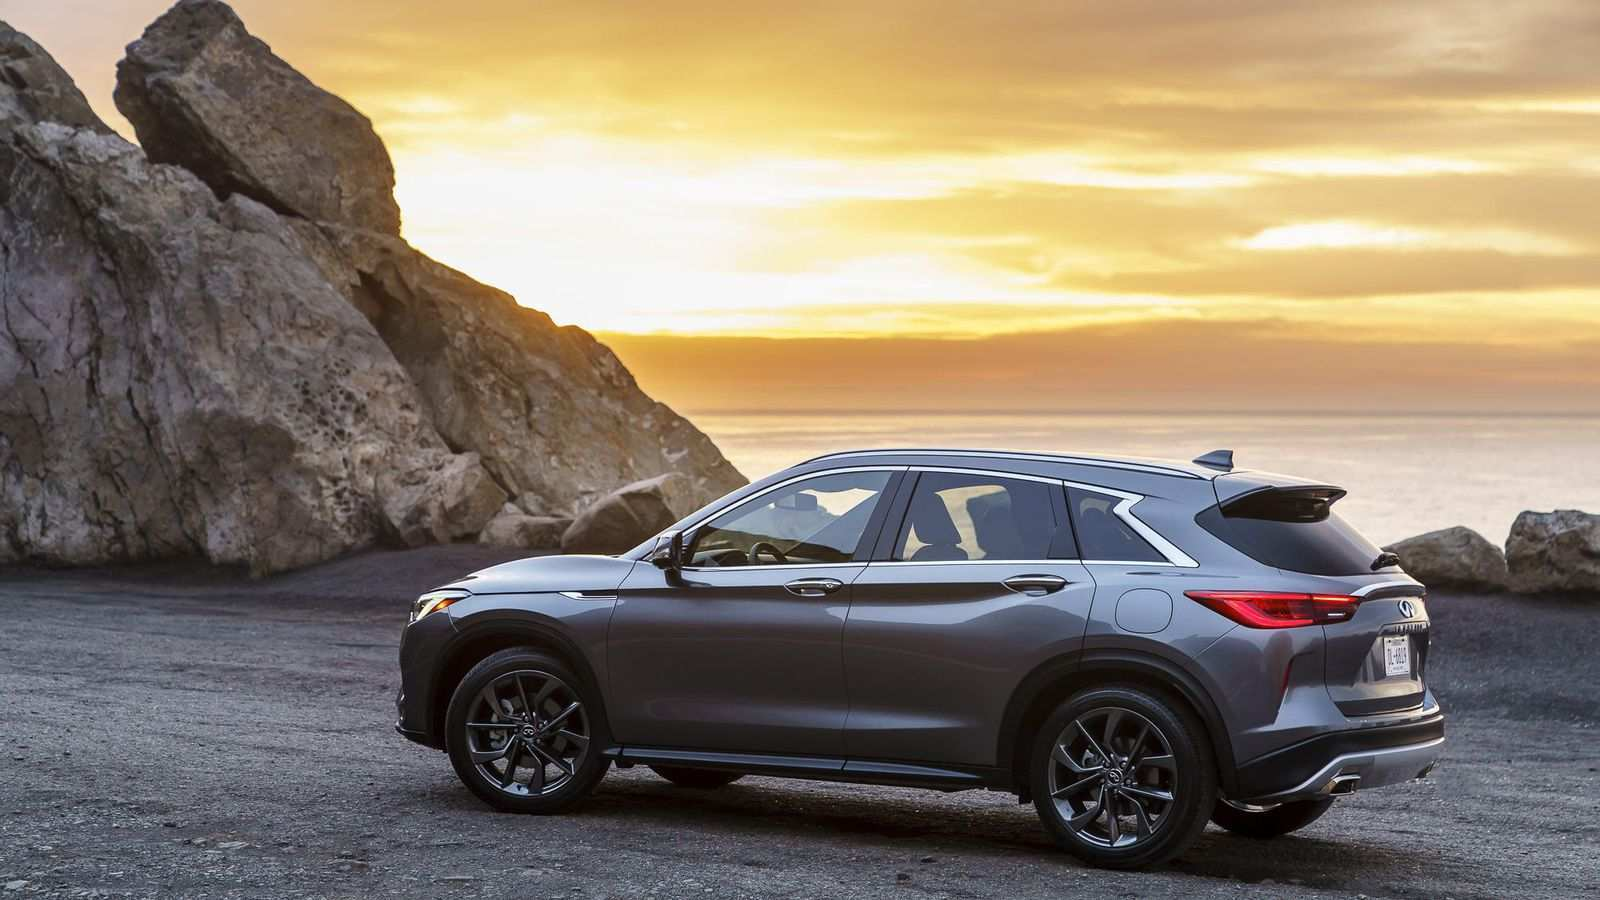 28 Concept of 2019 Infiniti Qx50 Redesign Rumors by 2019 Infiniti Qx50 Redesign